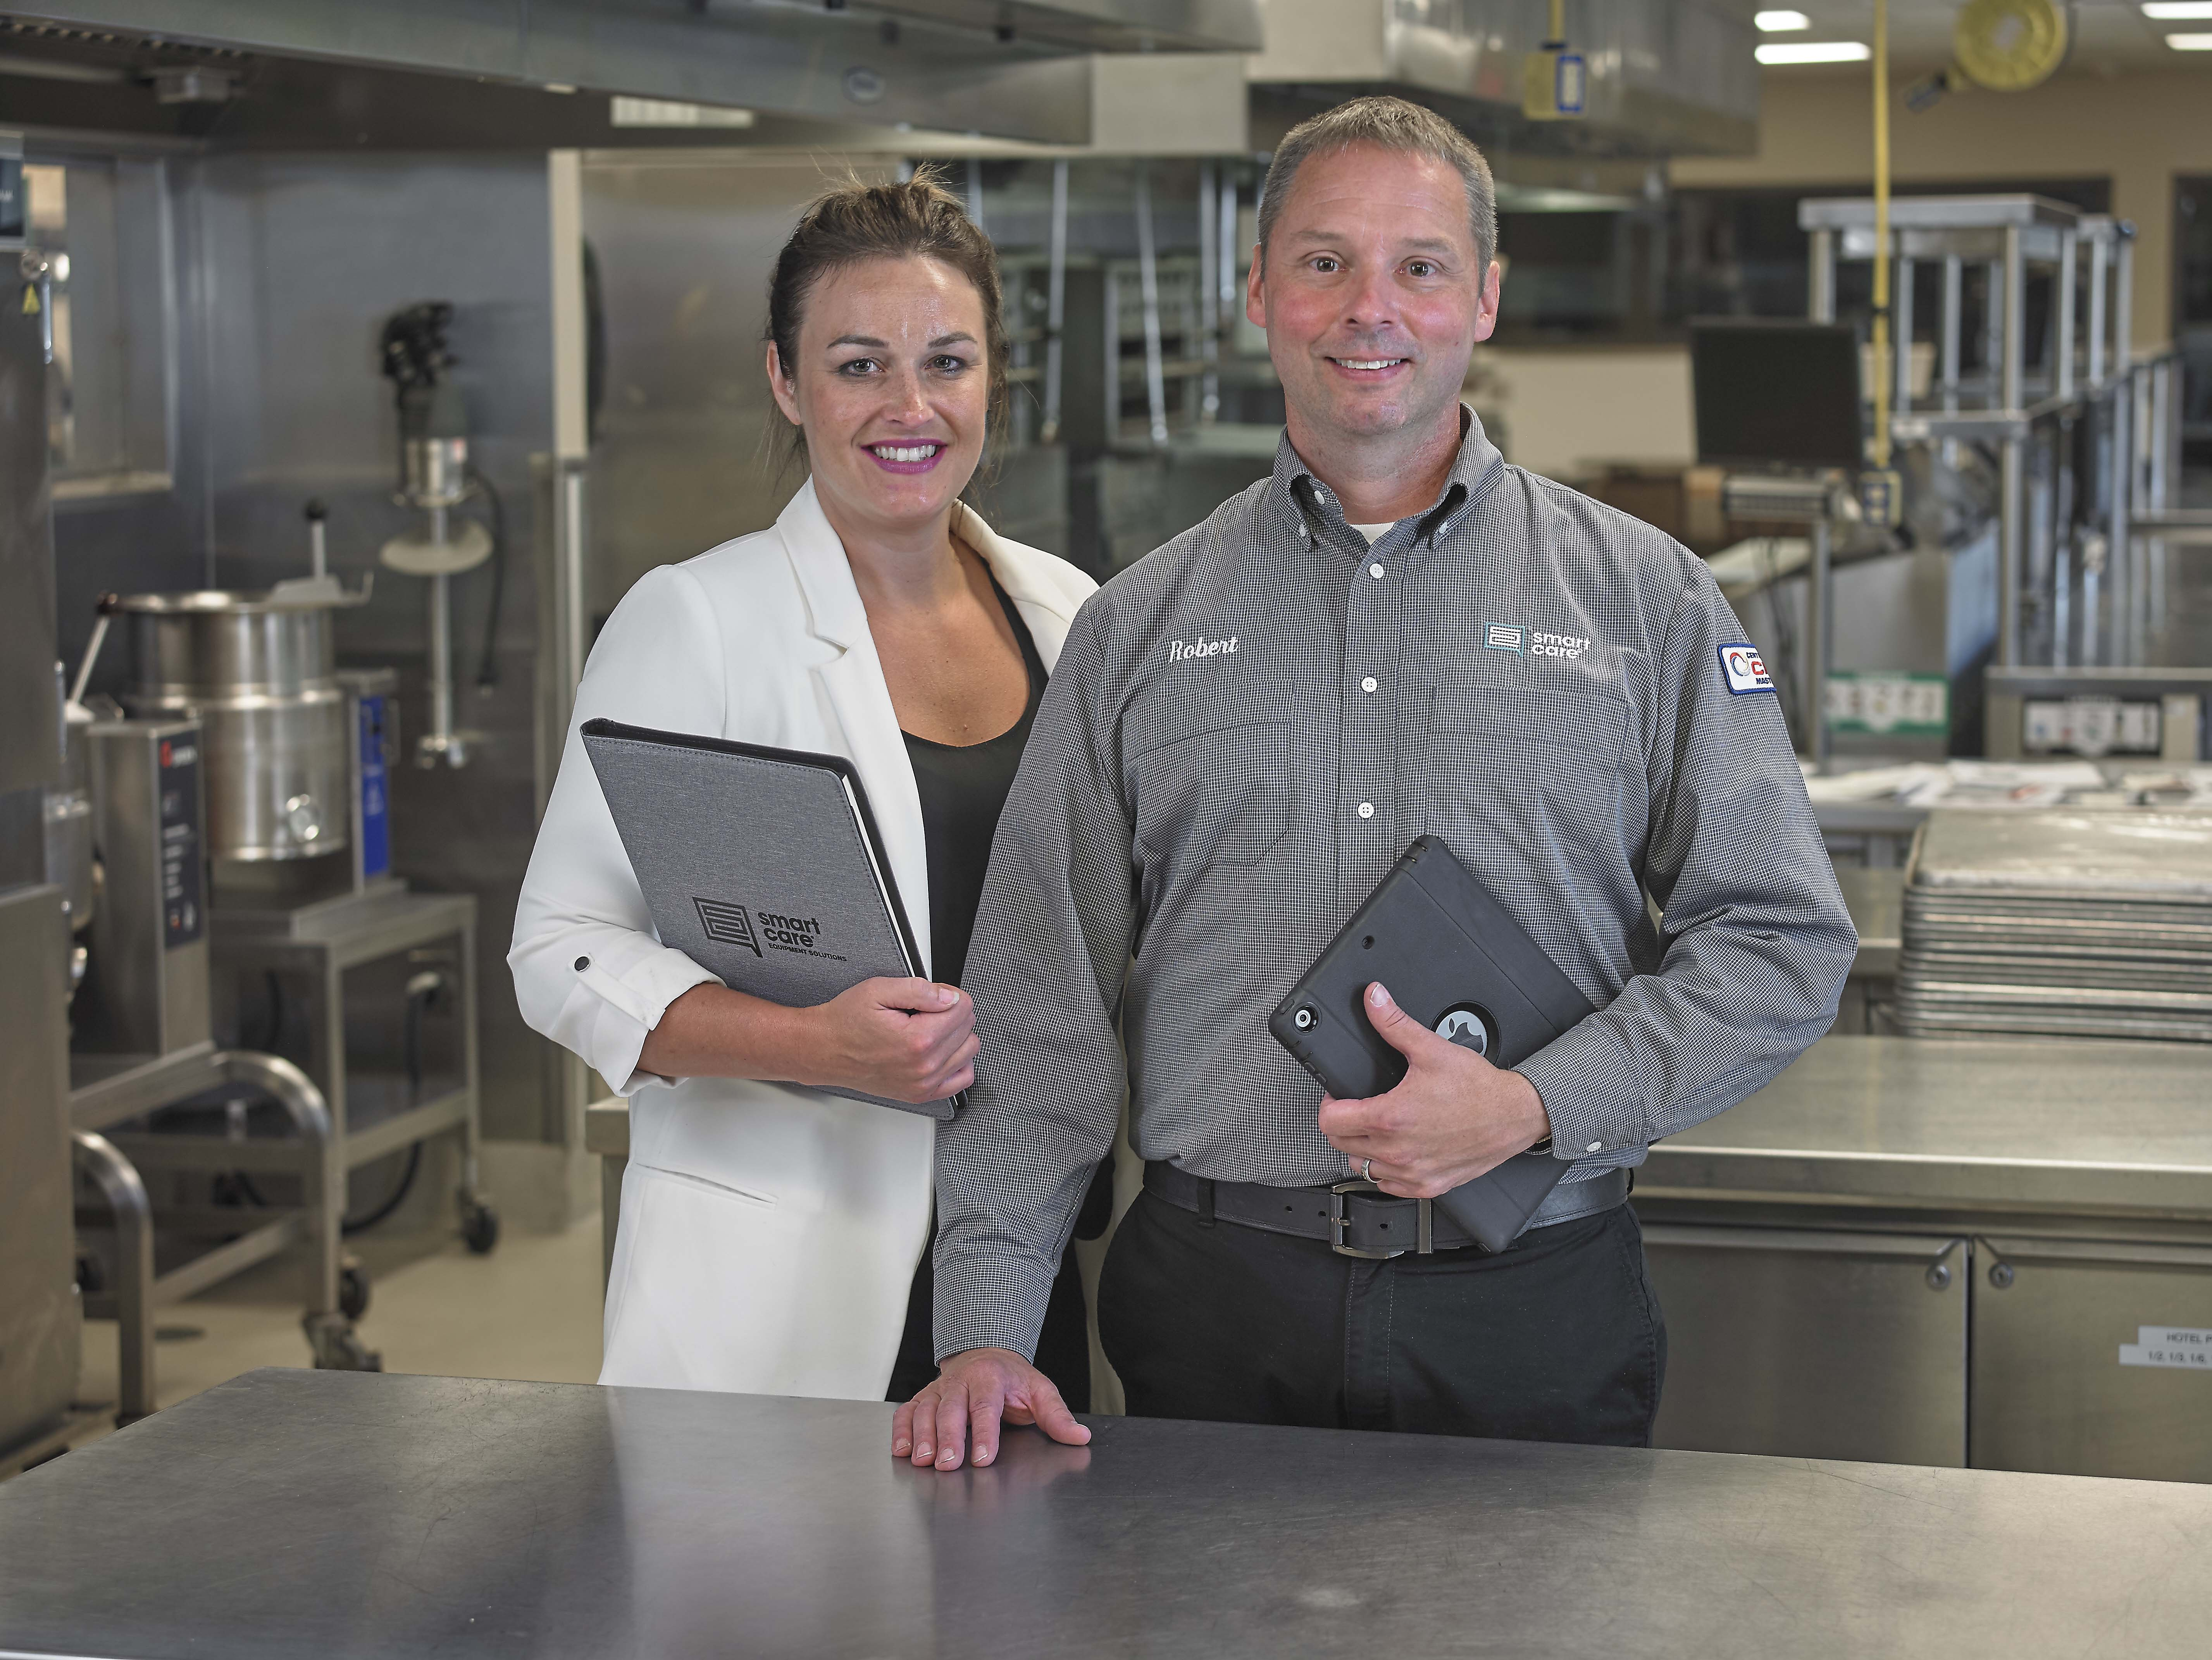 sales person and tech in kitchen